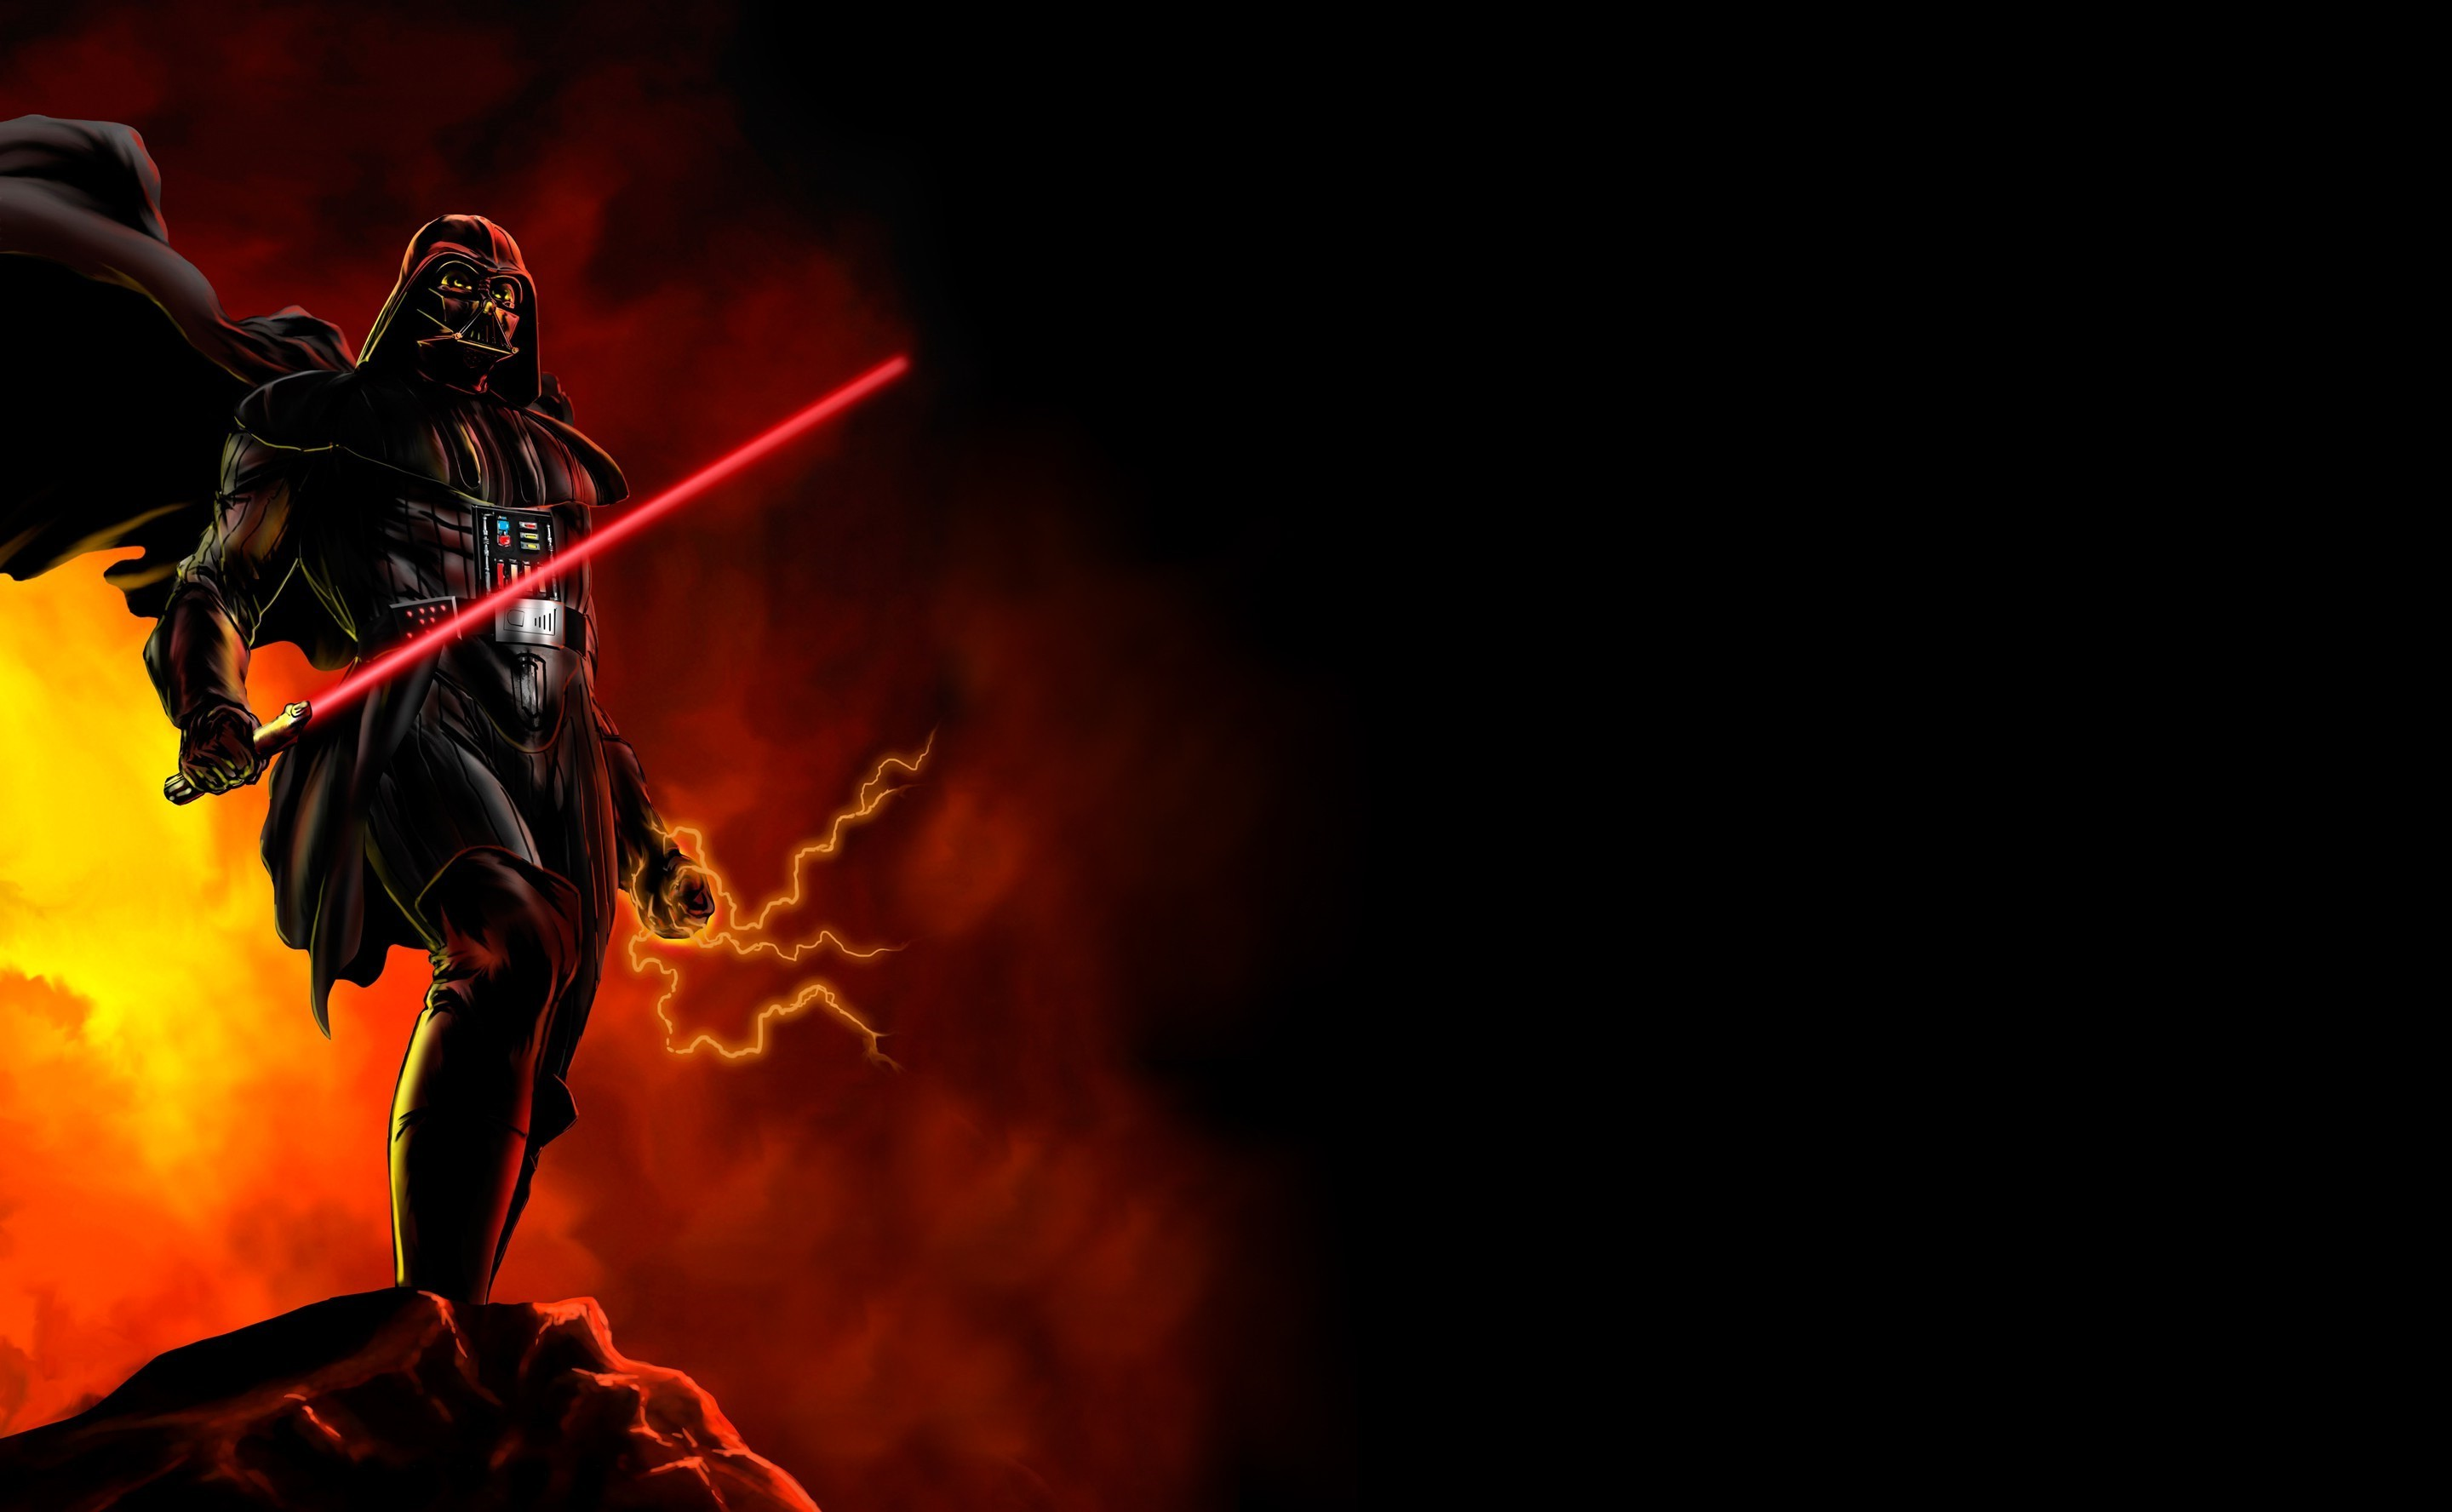 Star_Wars-artwork-Darth_Vader-wallpapers